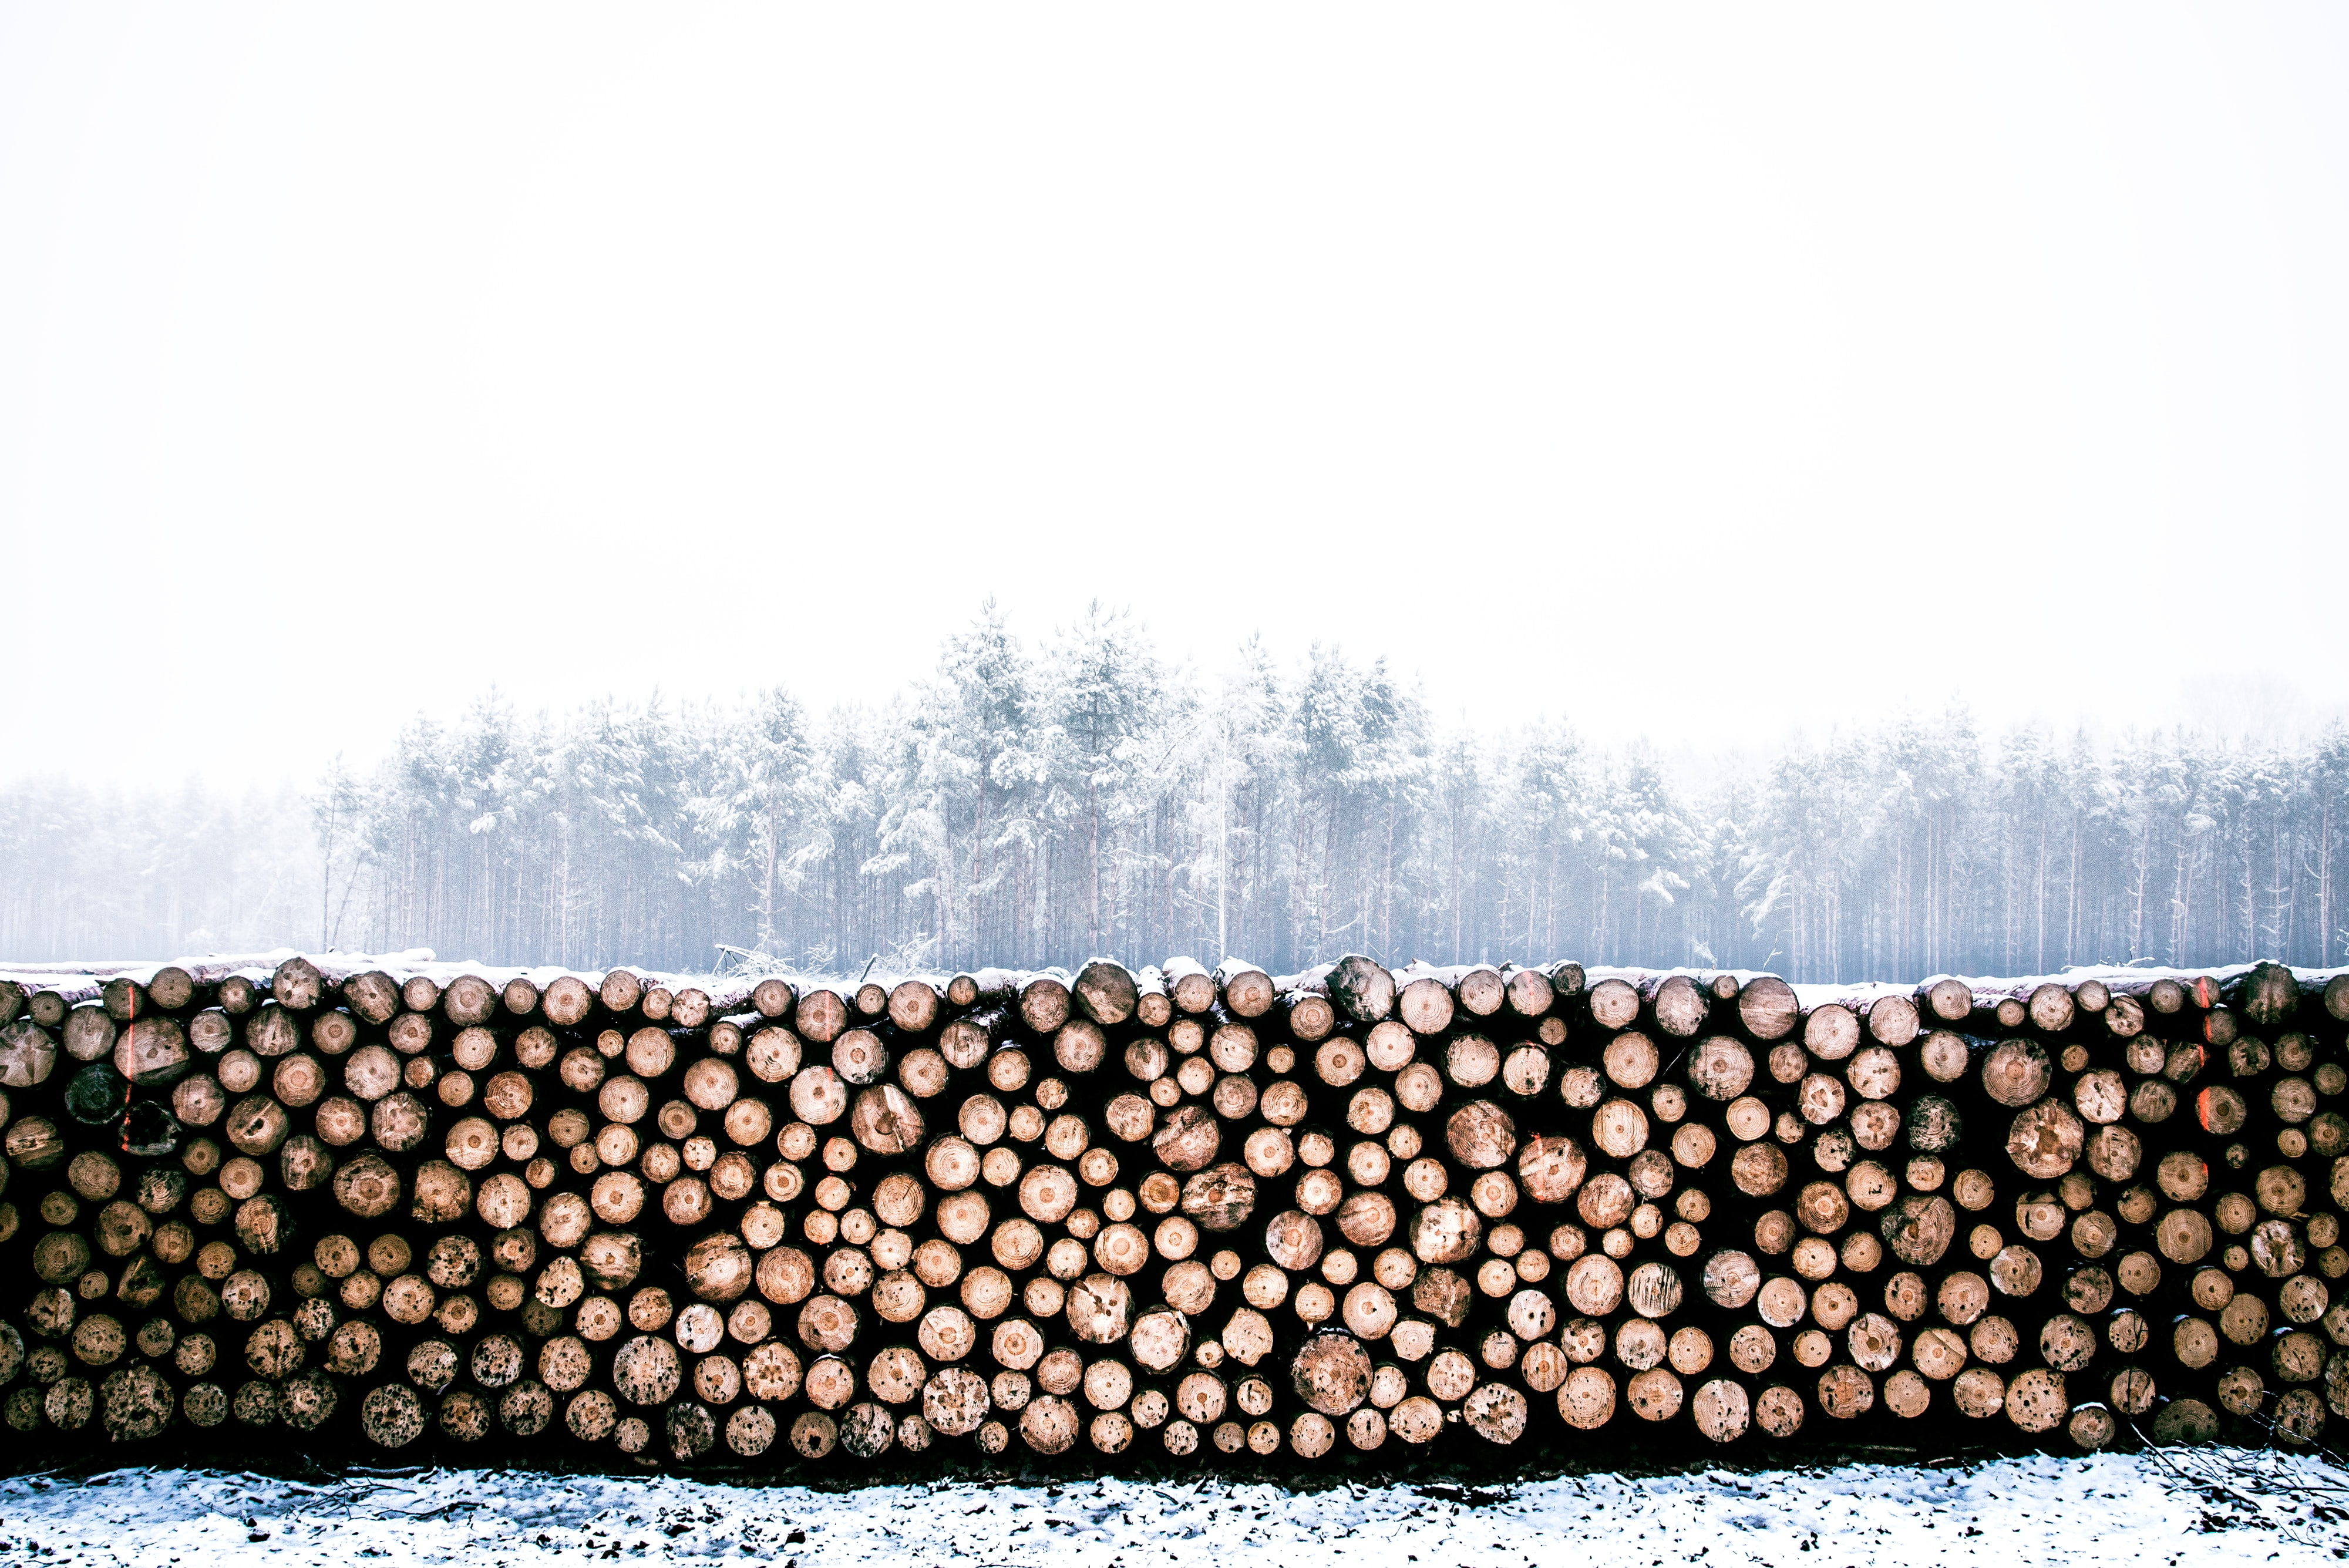 A stack of wood lays in front of a snowy and foggy forest